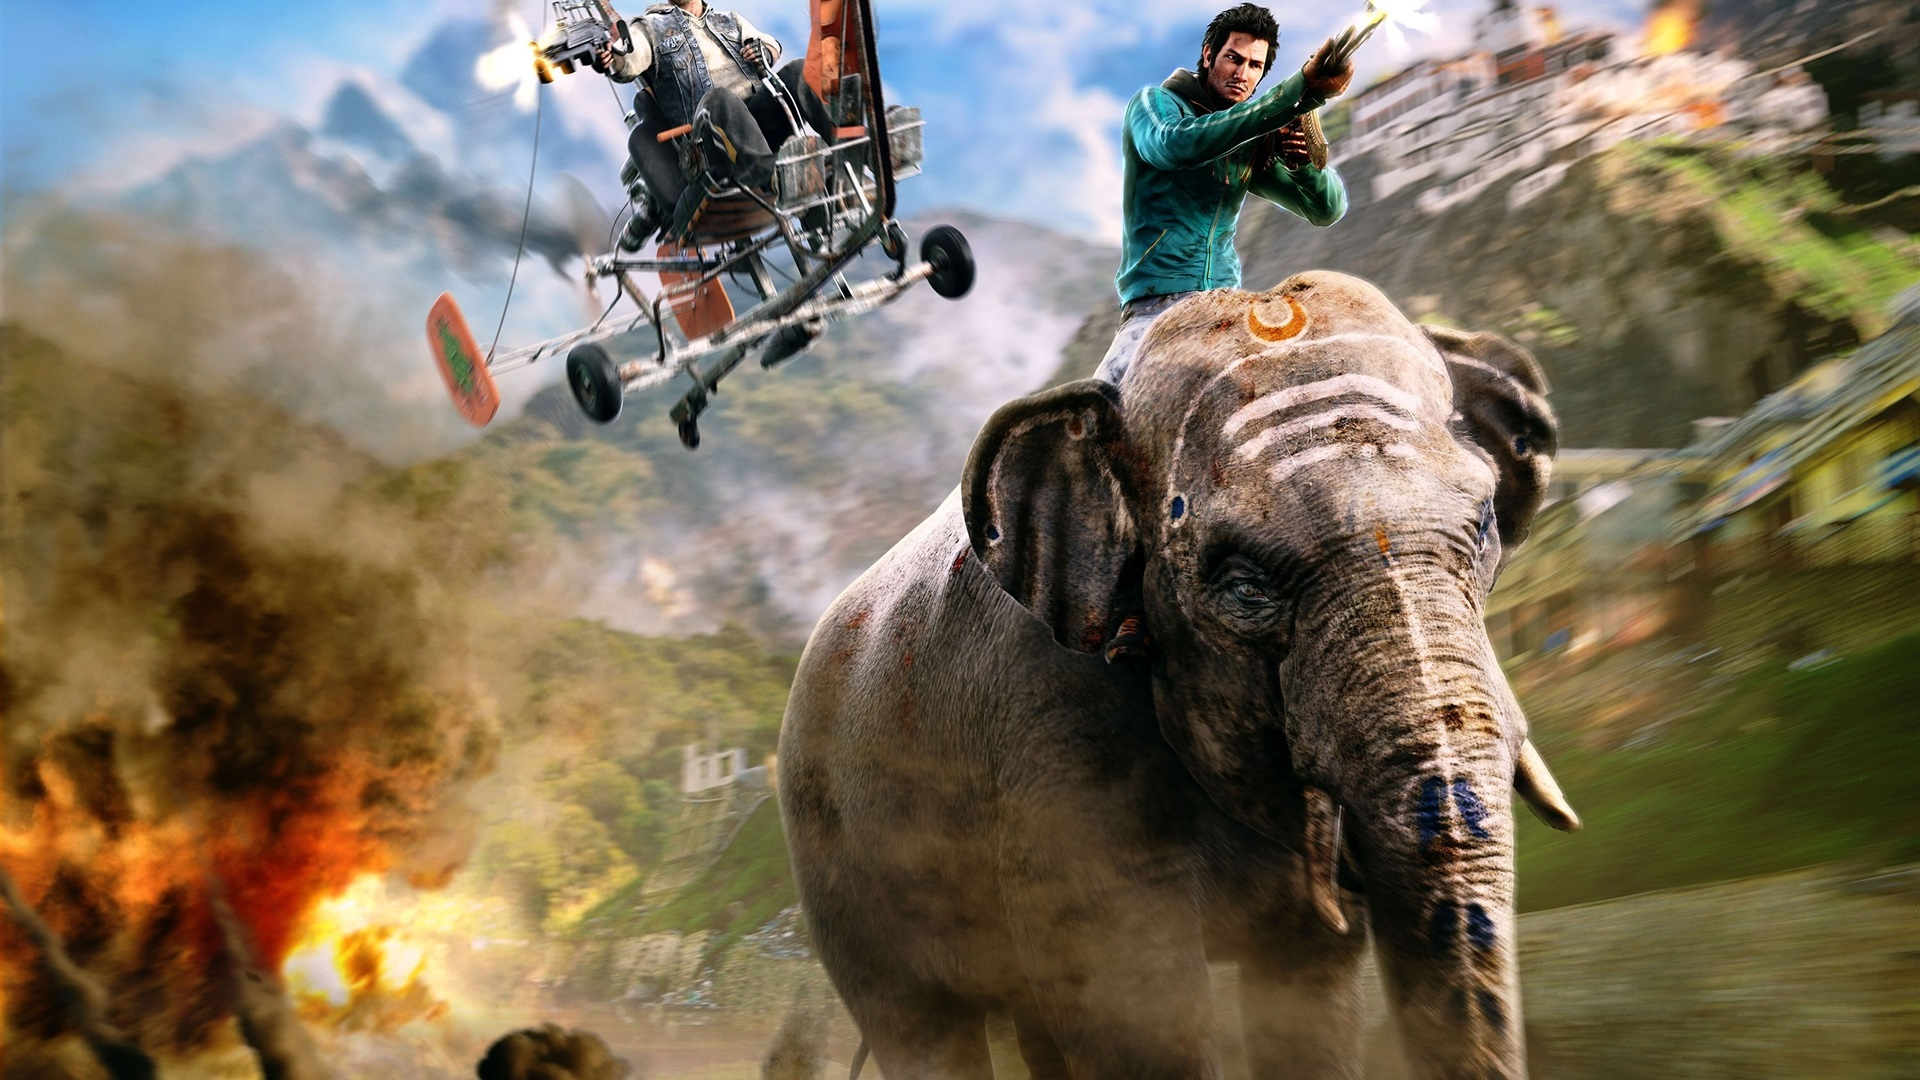 Wallpaper Far Cry 4 Ps4 Games Elephant 2880x1800 Hd Picture Image